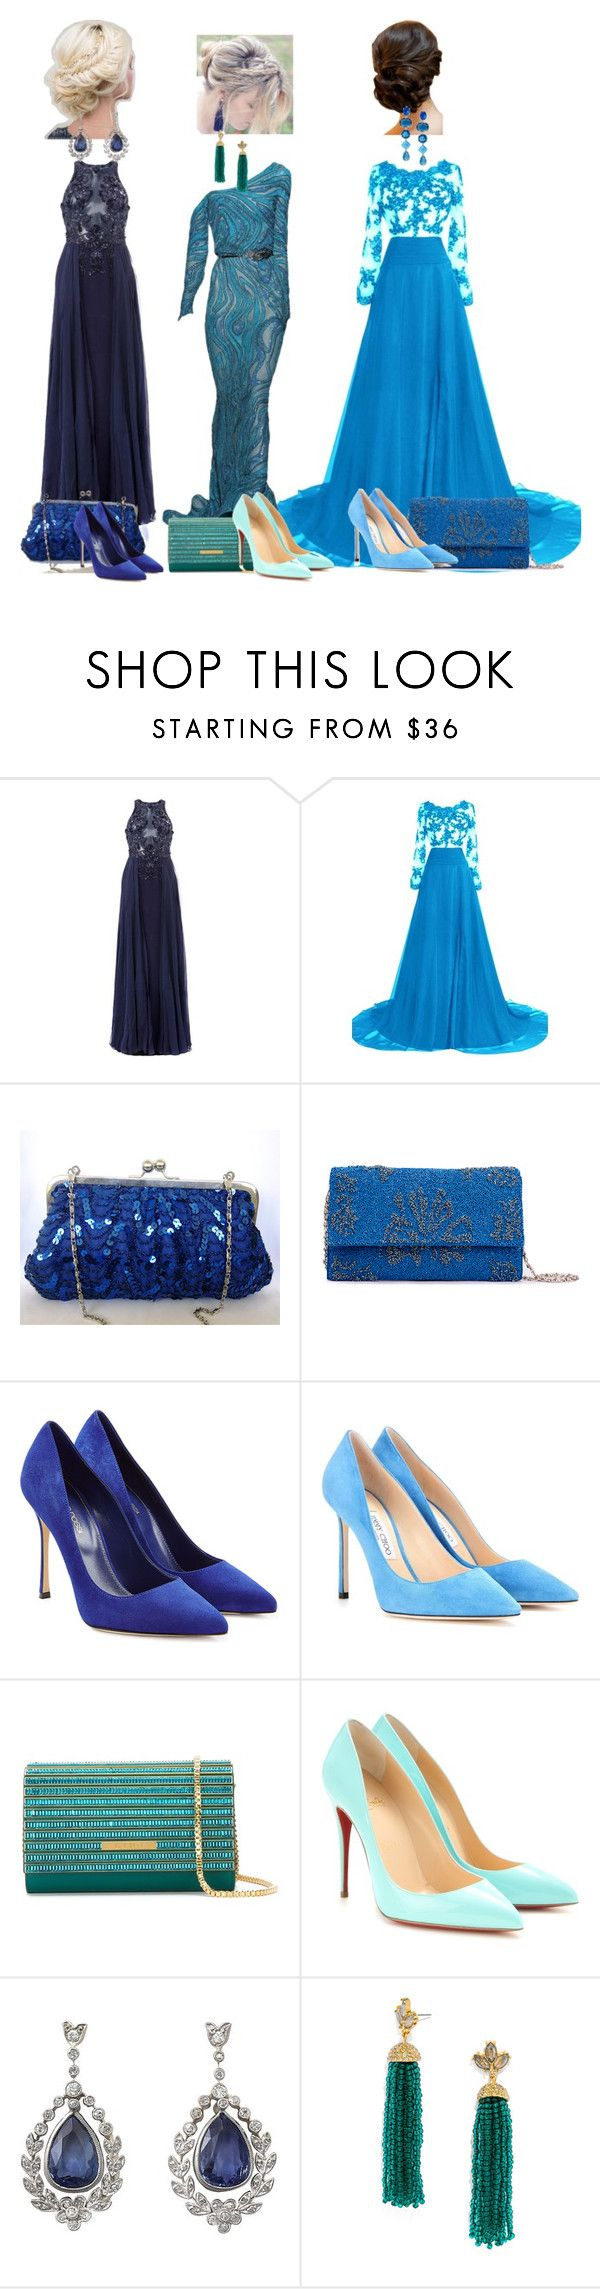 """Choose your favorite"" by valentina-miyake-toscano on Polyvore featuring Zuhair Murad, Sergio Rossi, Jimmy Choo, Elie Saab, Christian Louboutin, BaubleBar and Lauren Ralph Lauren"